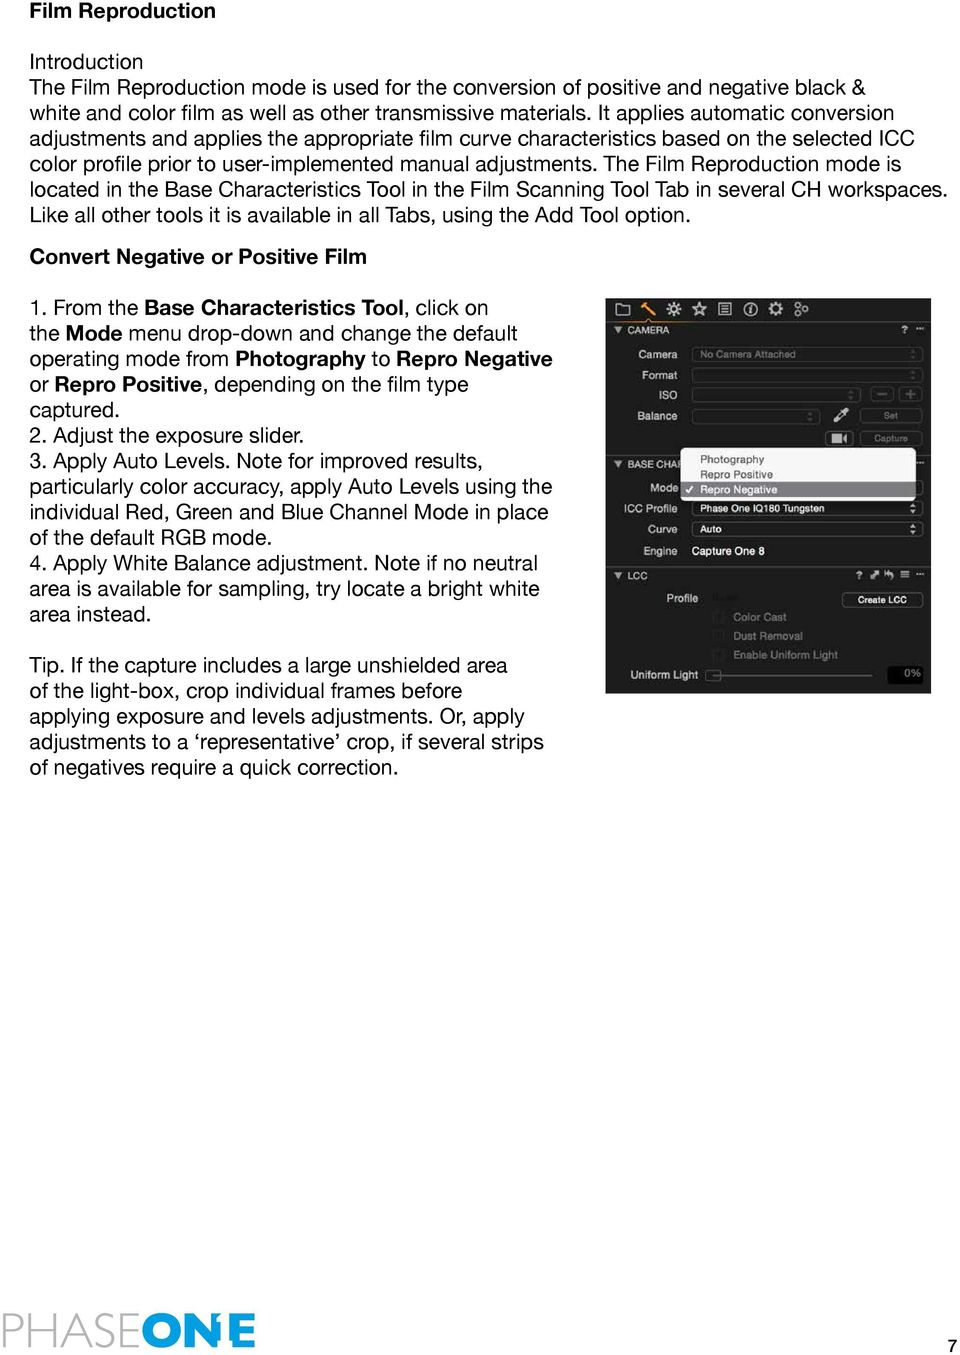 The Film Reproduction mode is located in the Base Characteristics Tool in the Film Scanning Tool Tab in several CH workspaces.